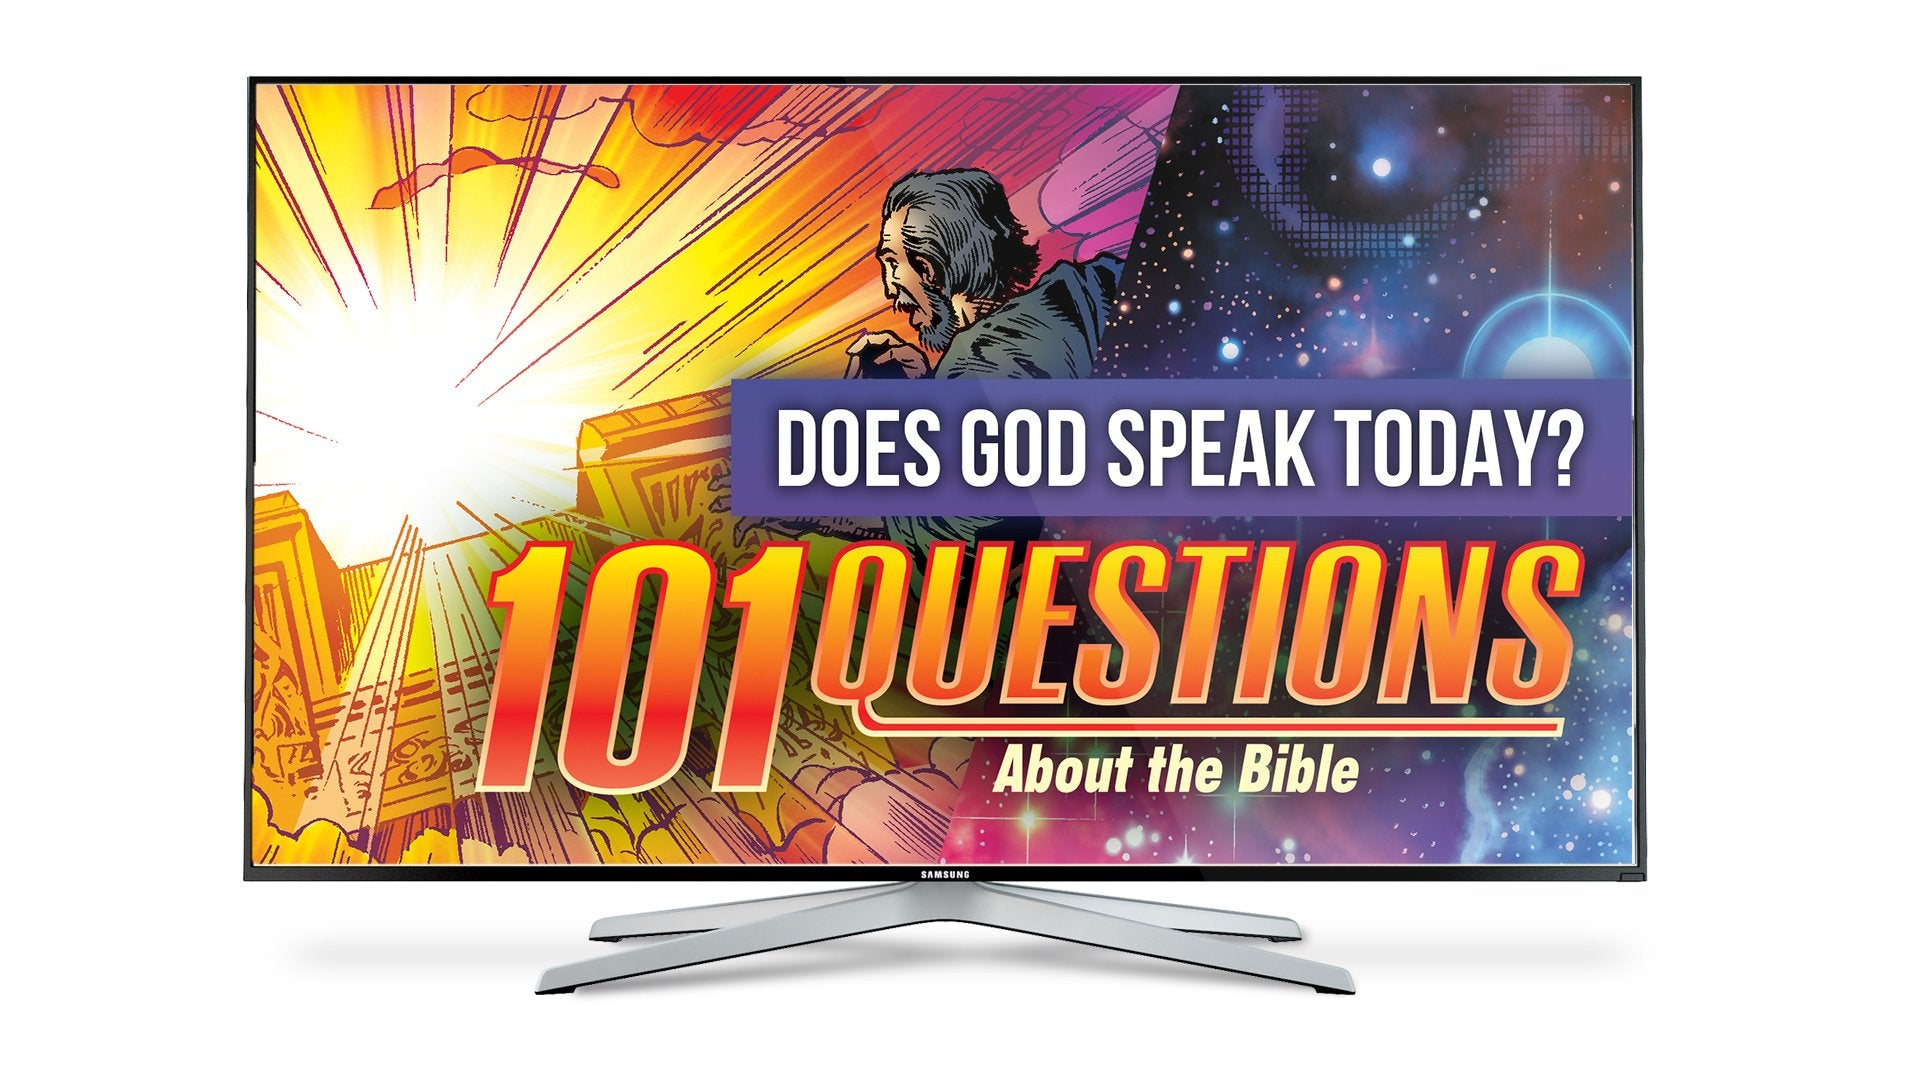 101 Questions: #3 Does God Speak Today?